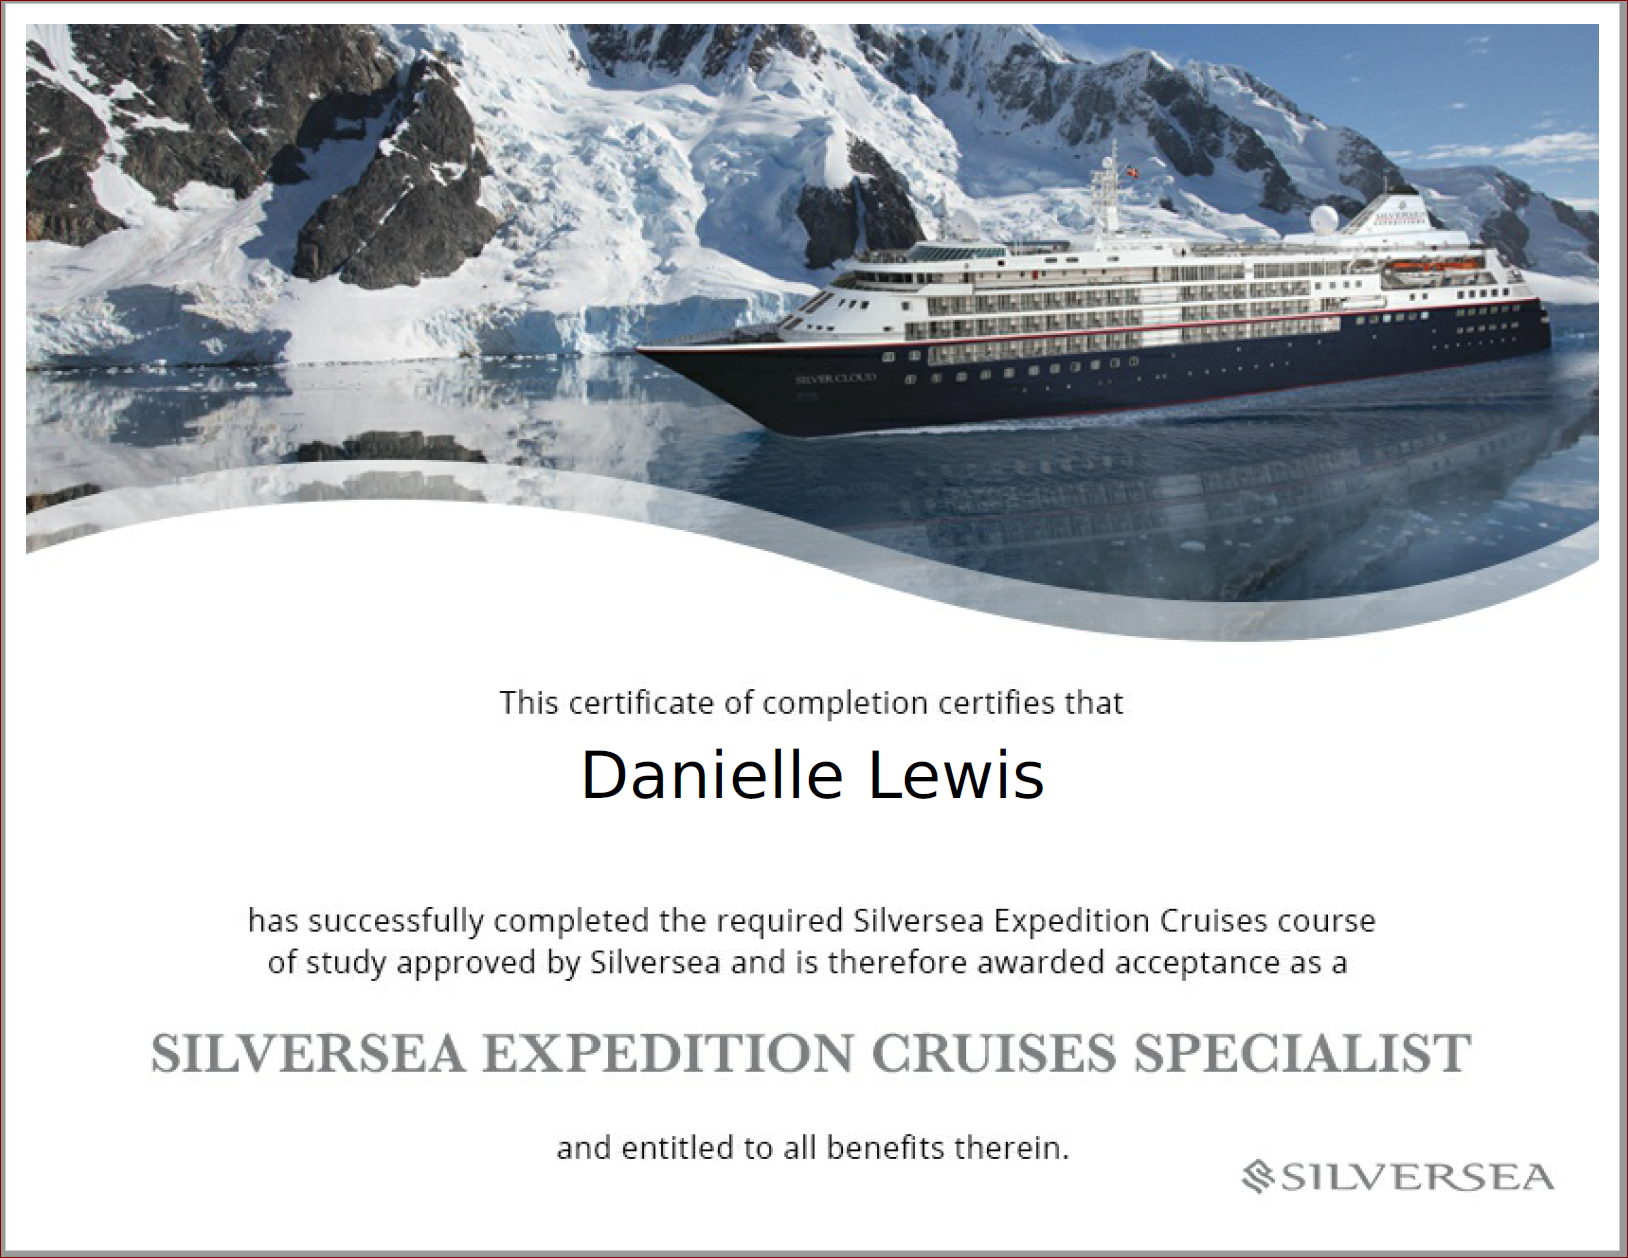 SelfishMe Travel - Silversea Expedition Cruises Specialist Certificate